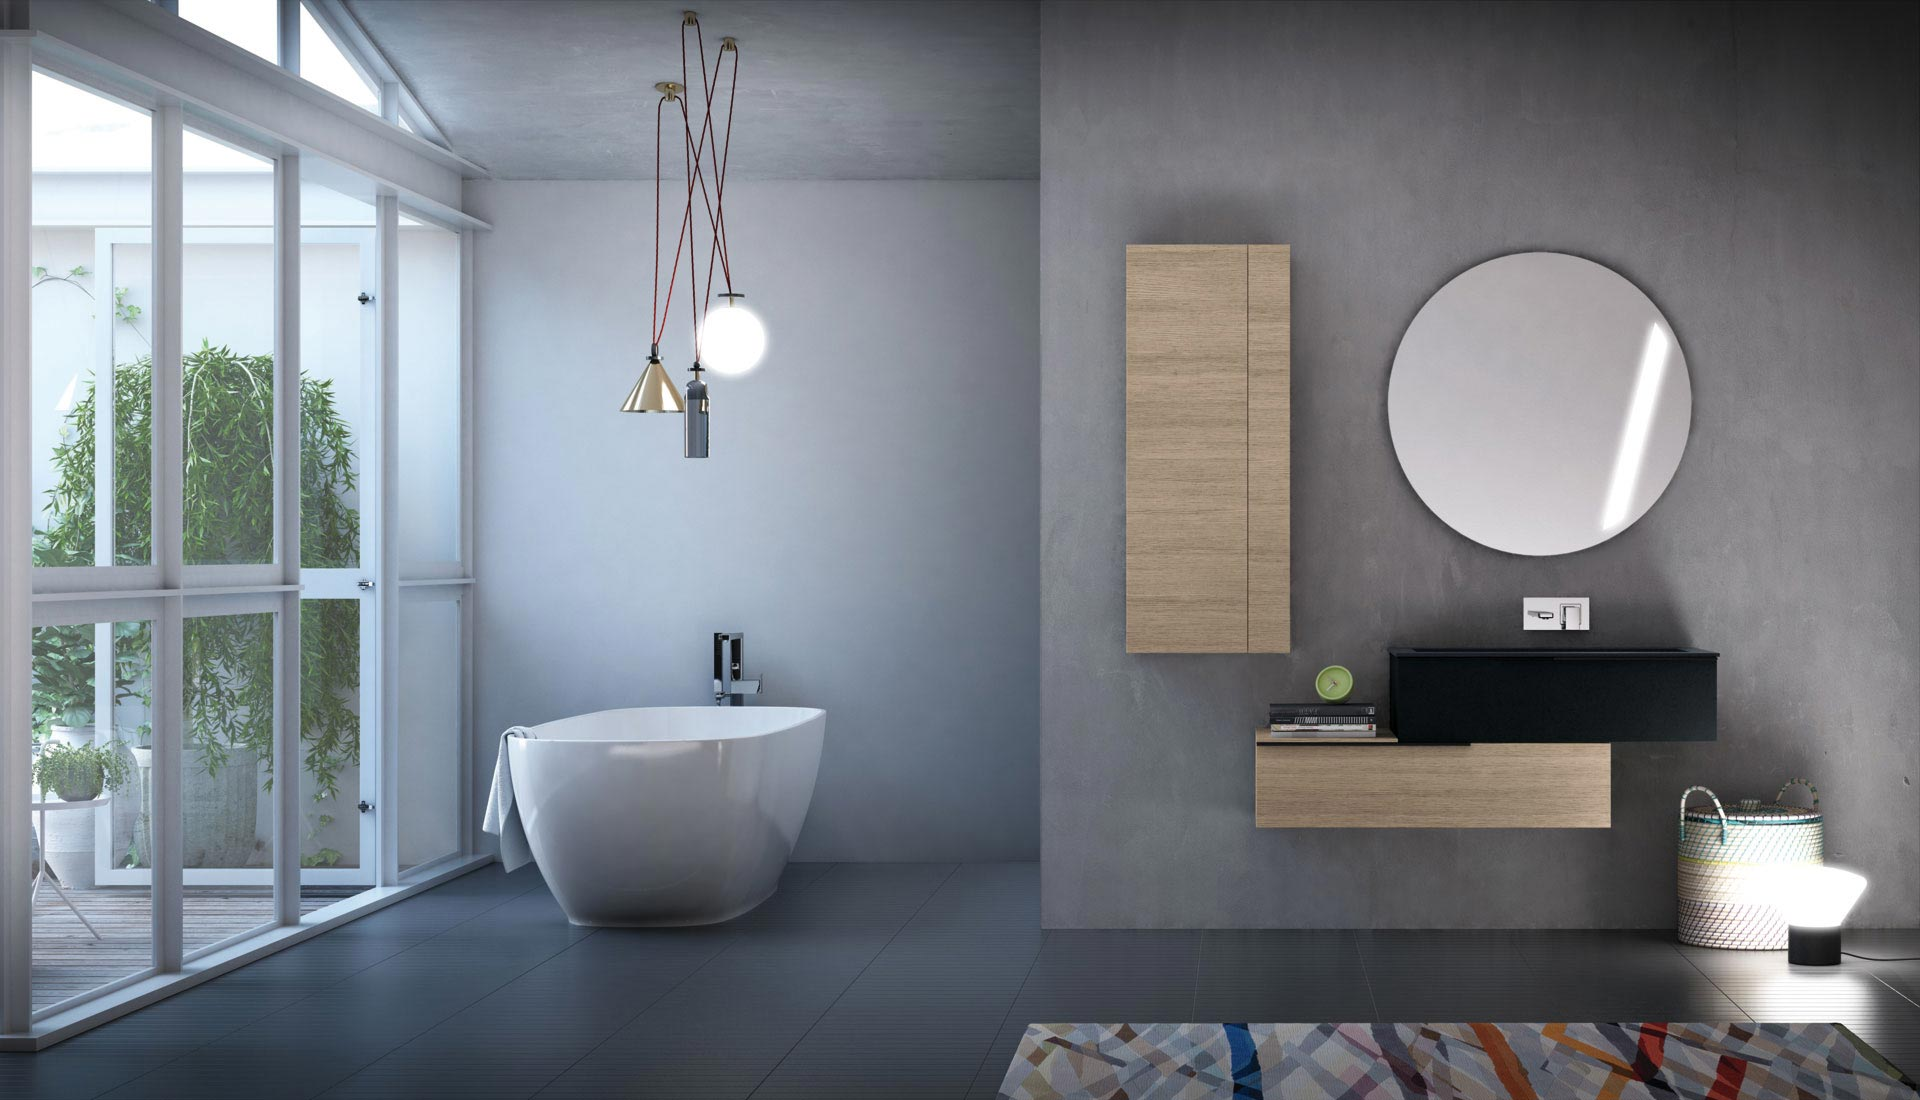 puntotre bathrooms furniture and bath furnishing ideas - Foto Arredo Bagno